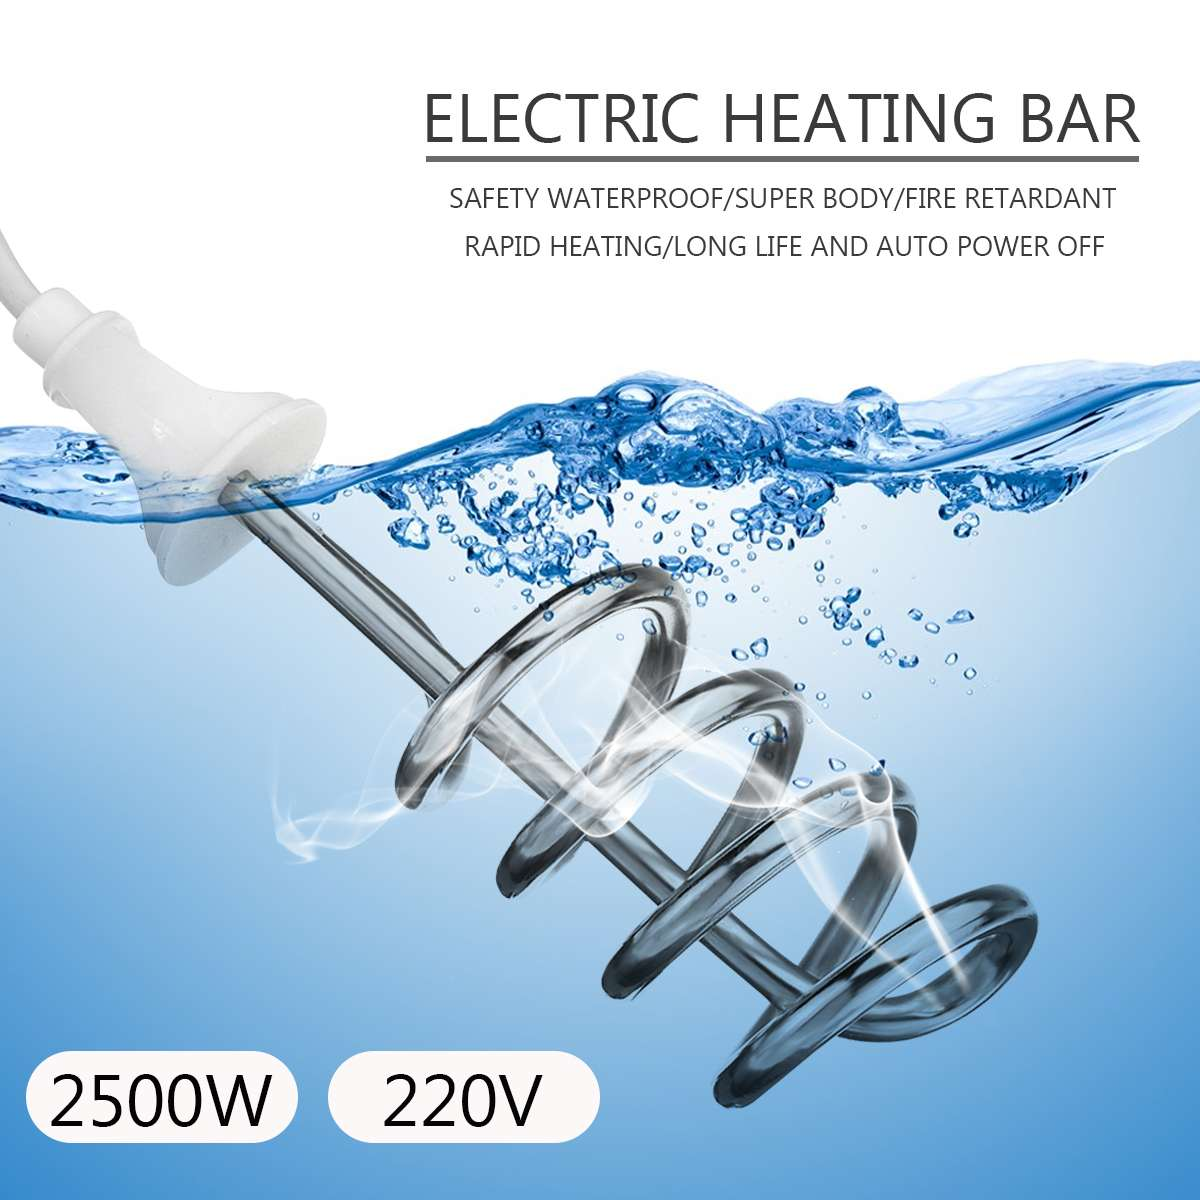 2500W 220V Hook Type Water Heater Portable Electric Immersion Element Boiler For Bath Tub Pool For Bathroom Outdoor Camping